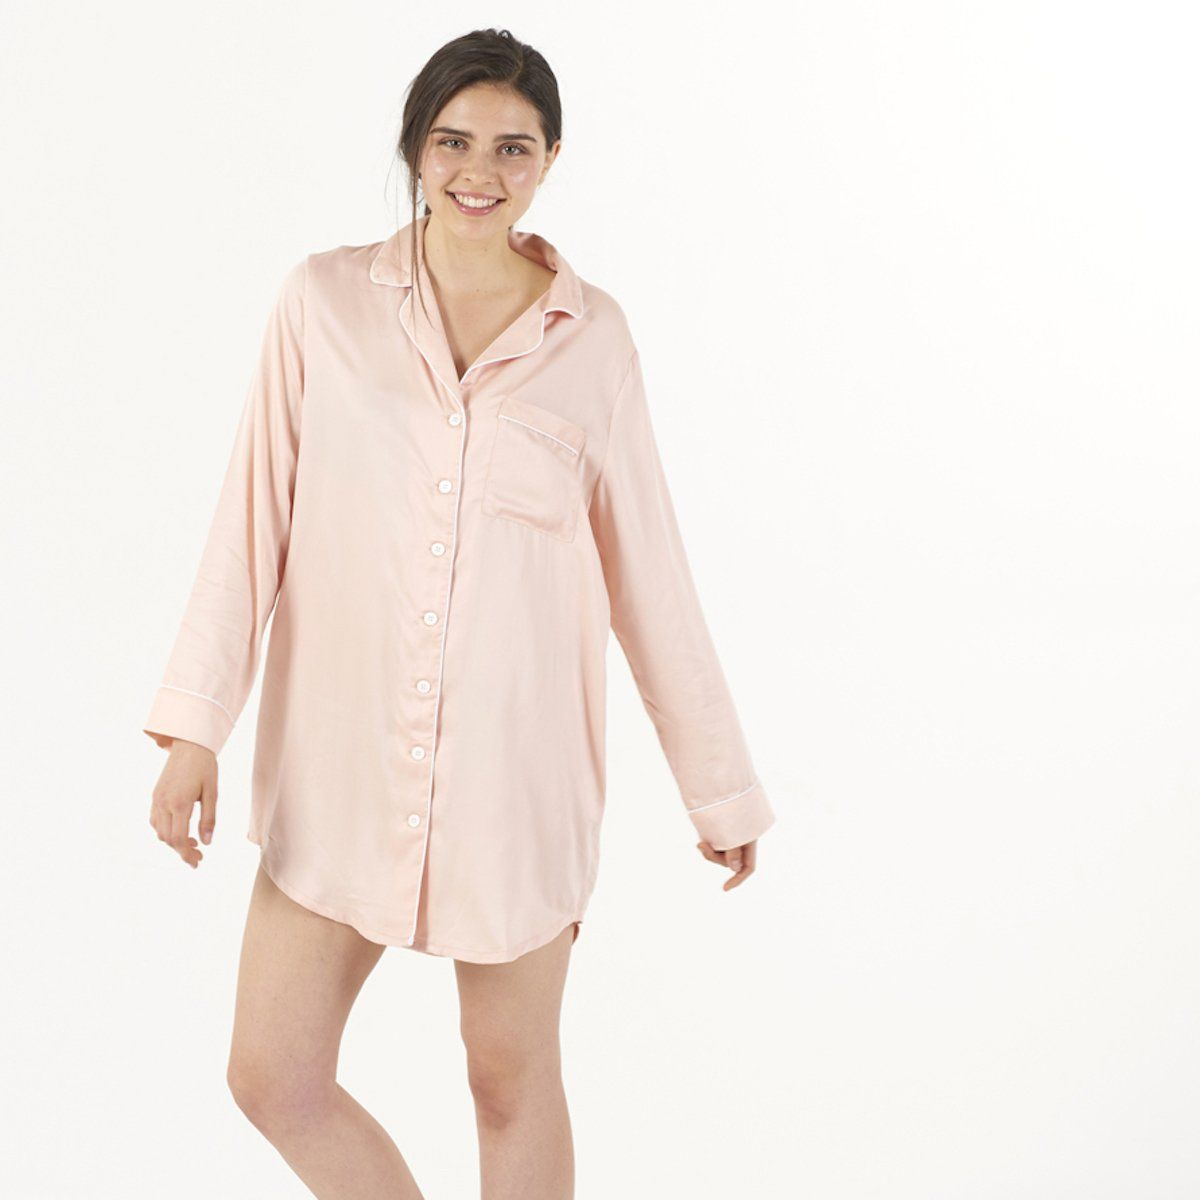 a4b478c0fa Crafted from 100% Organic Bamboo Lyocell fabric